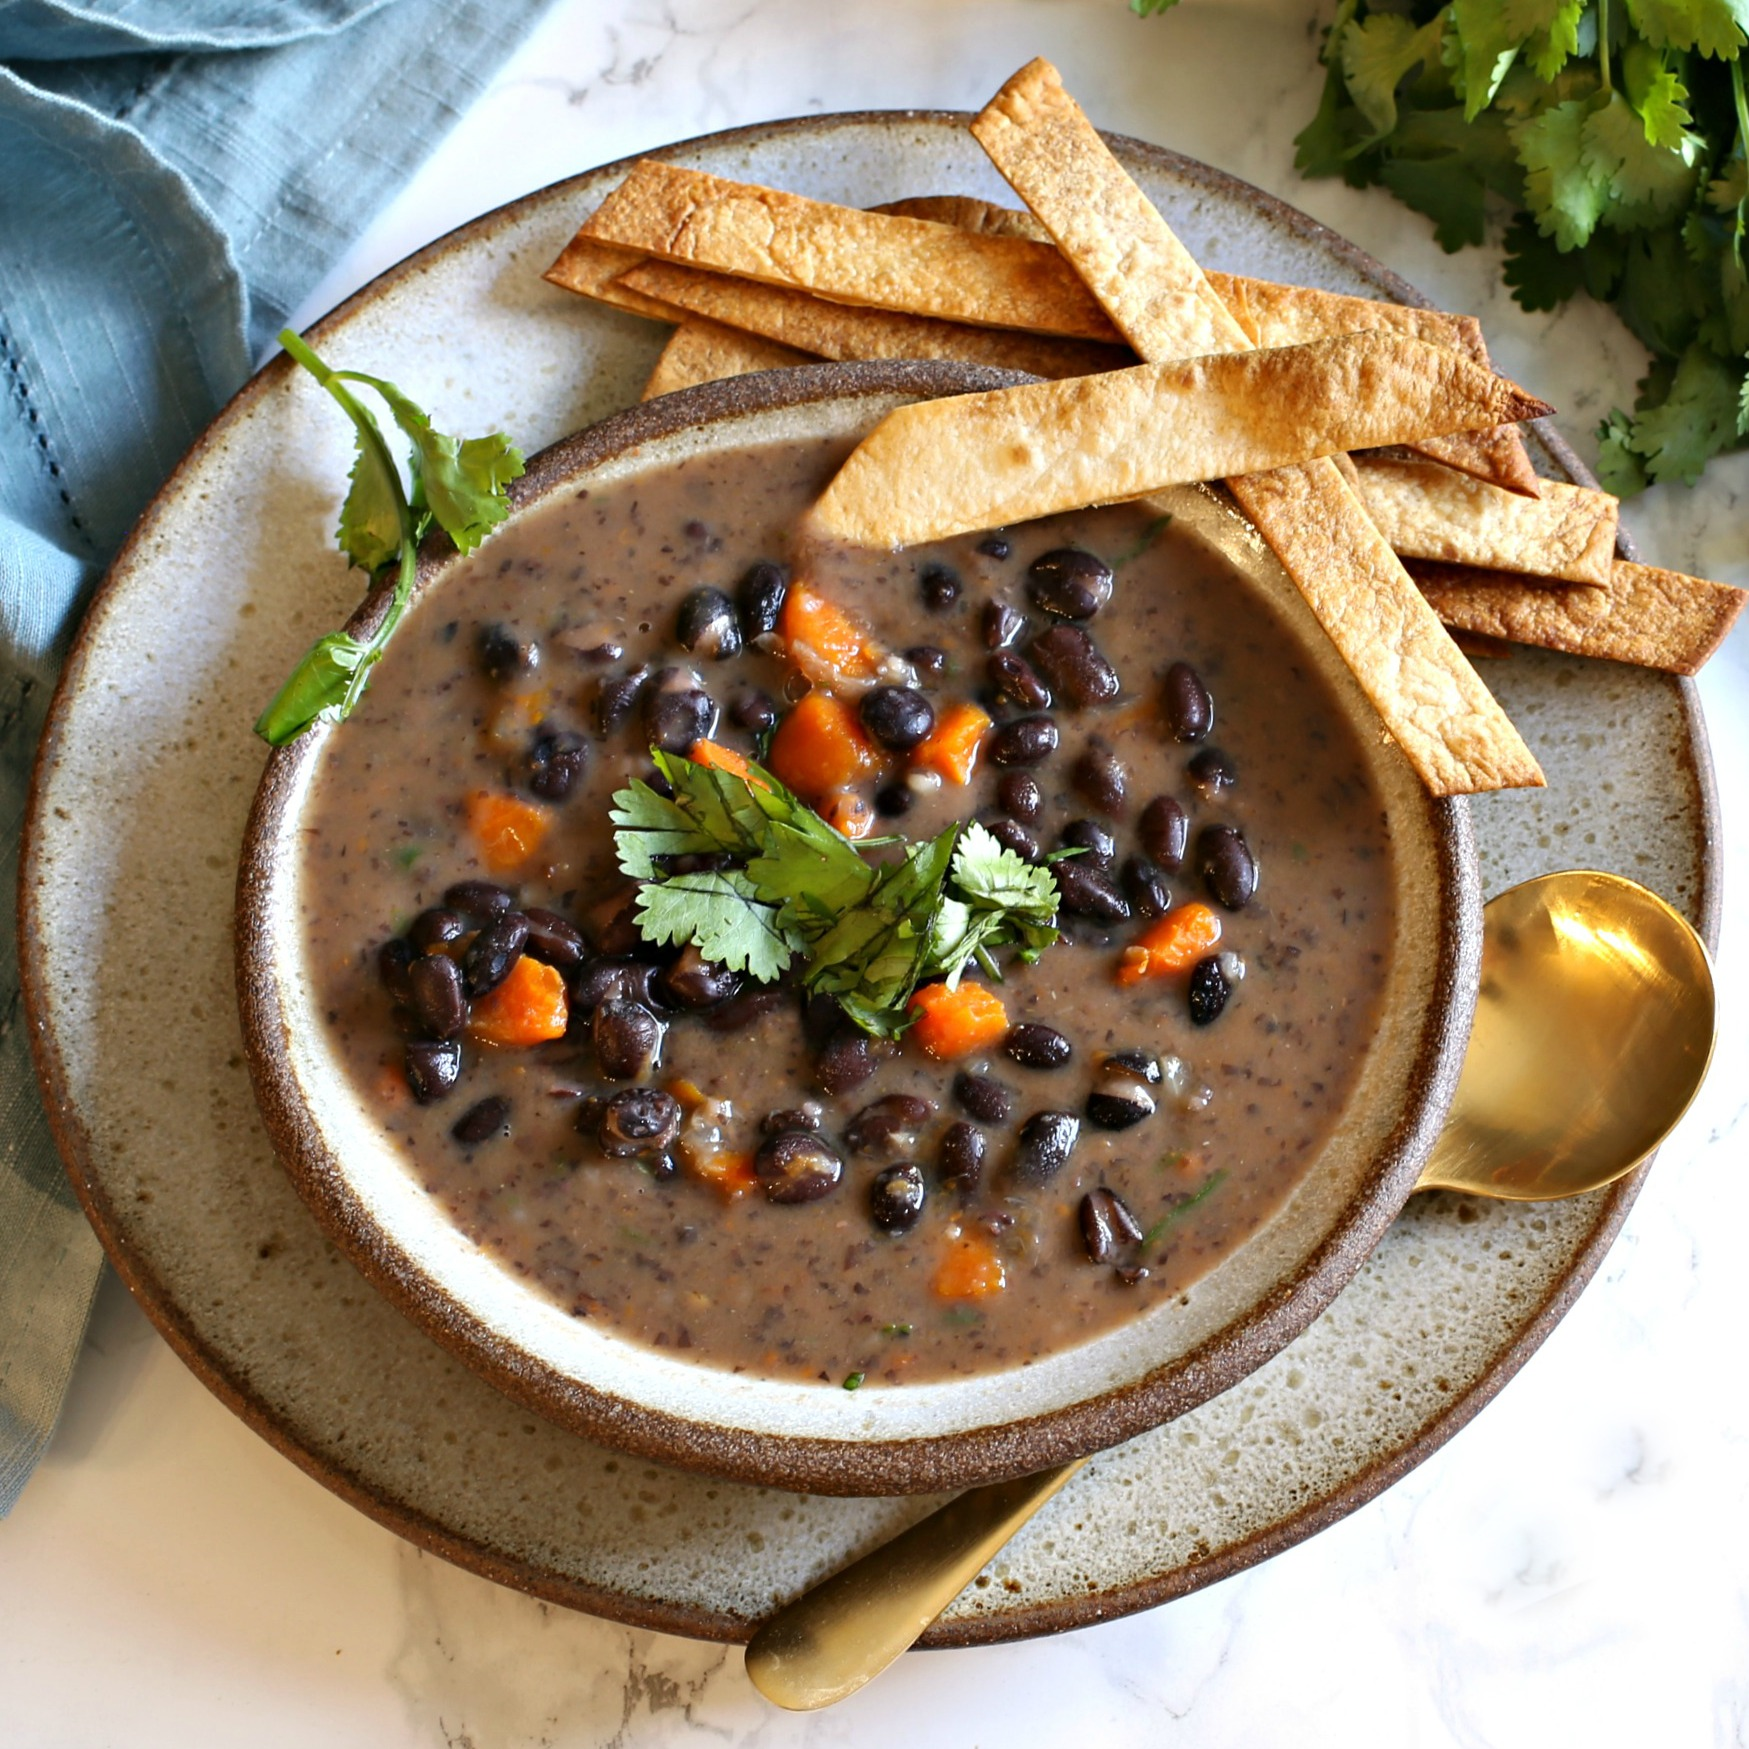 Recipe for soup made with onions, carrots, black beans, cumin and chicken stock.